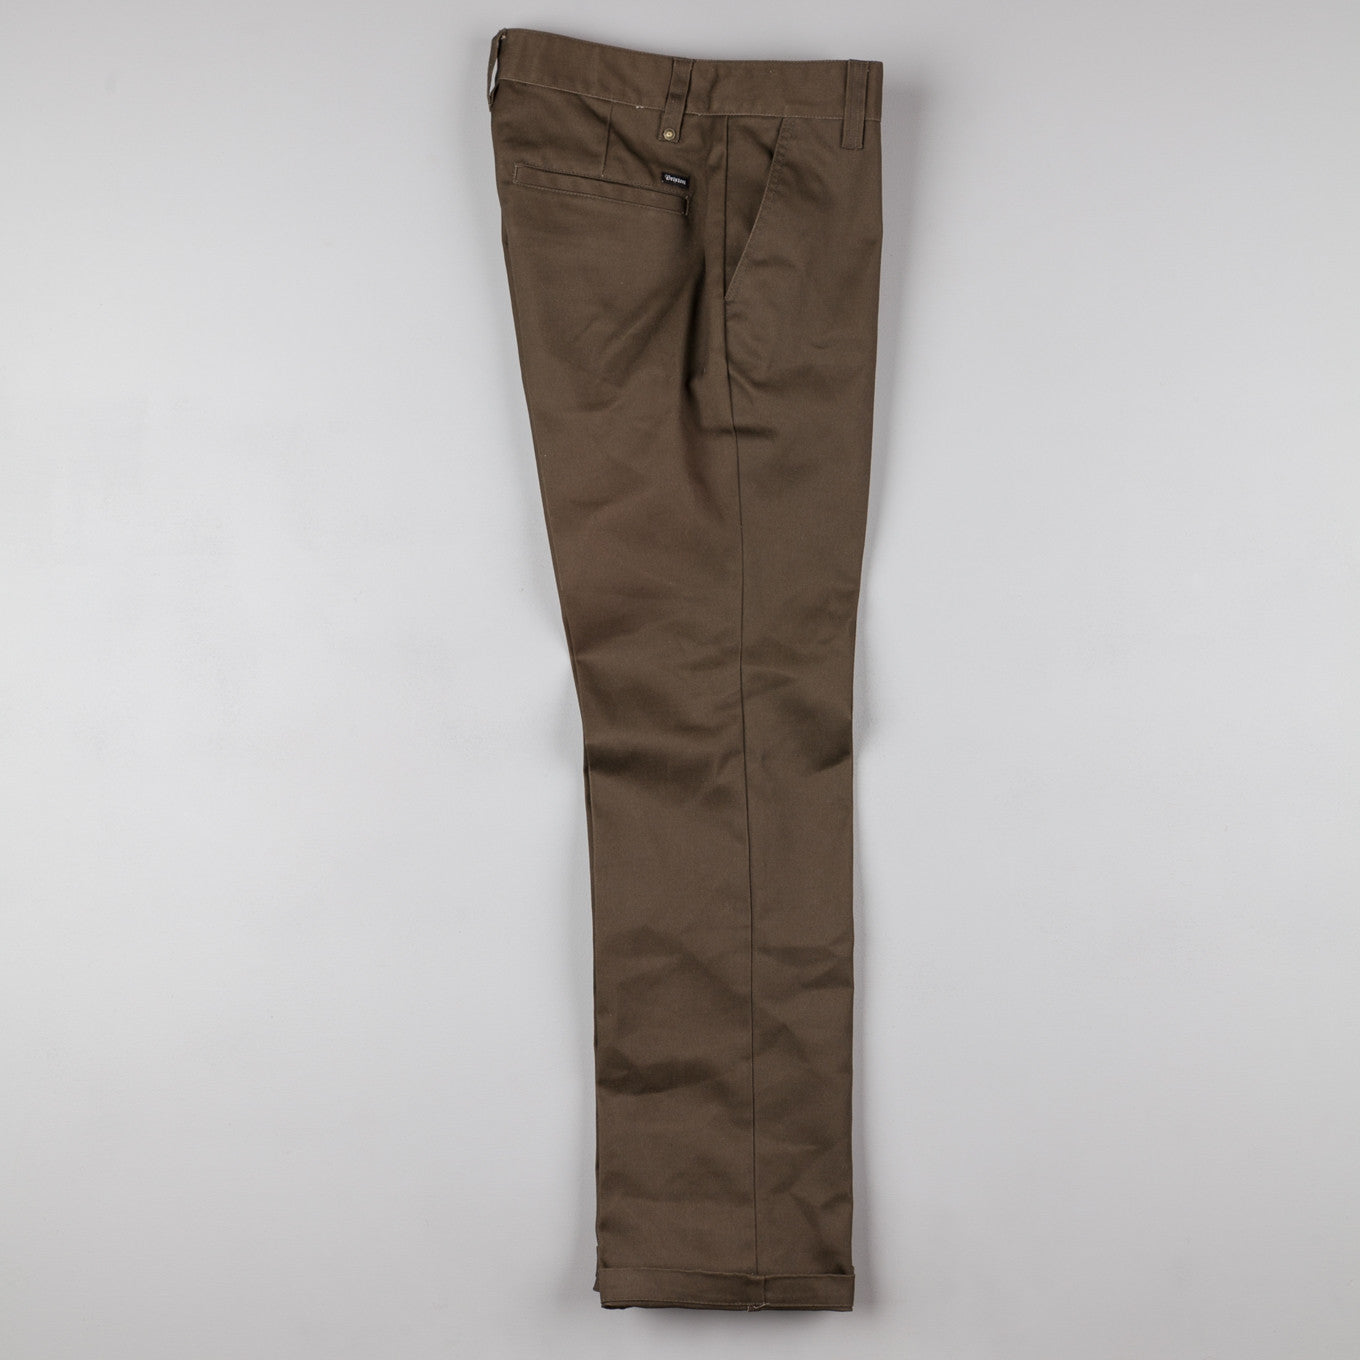 Brixton Fleet Rigid Chino Trousers - Brown